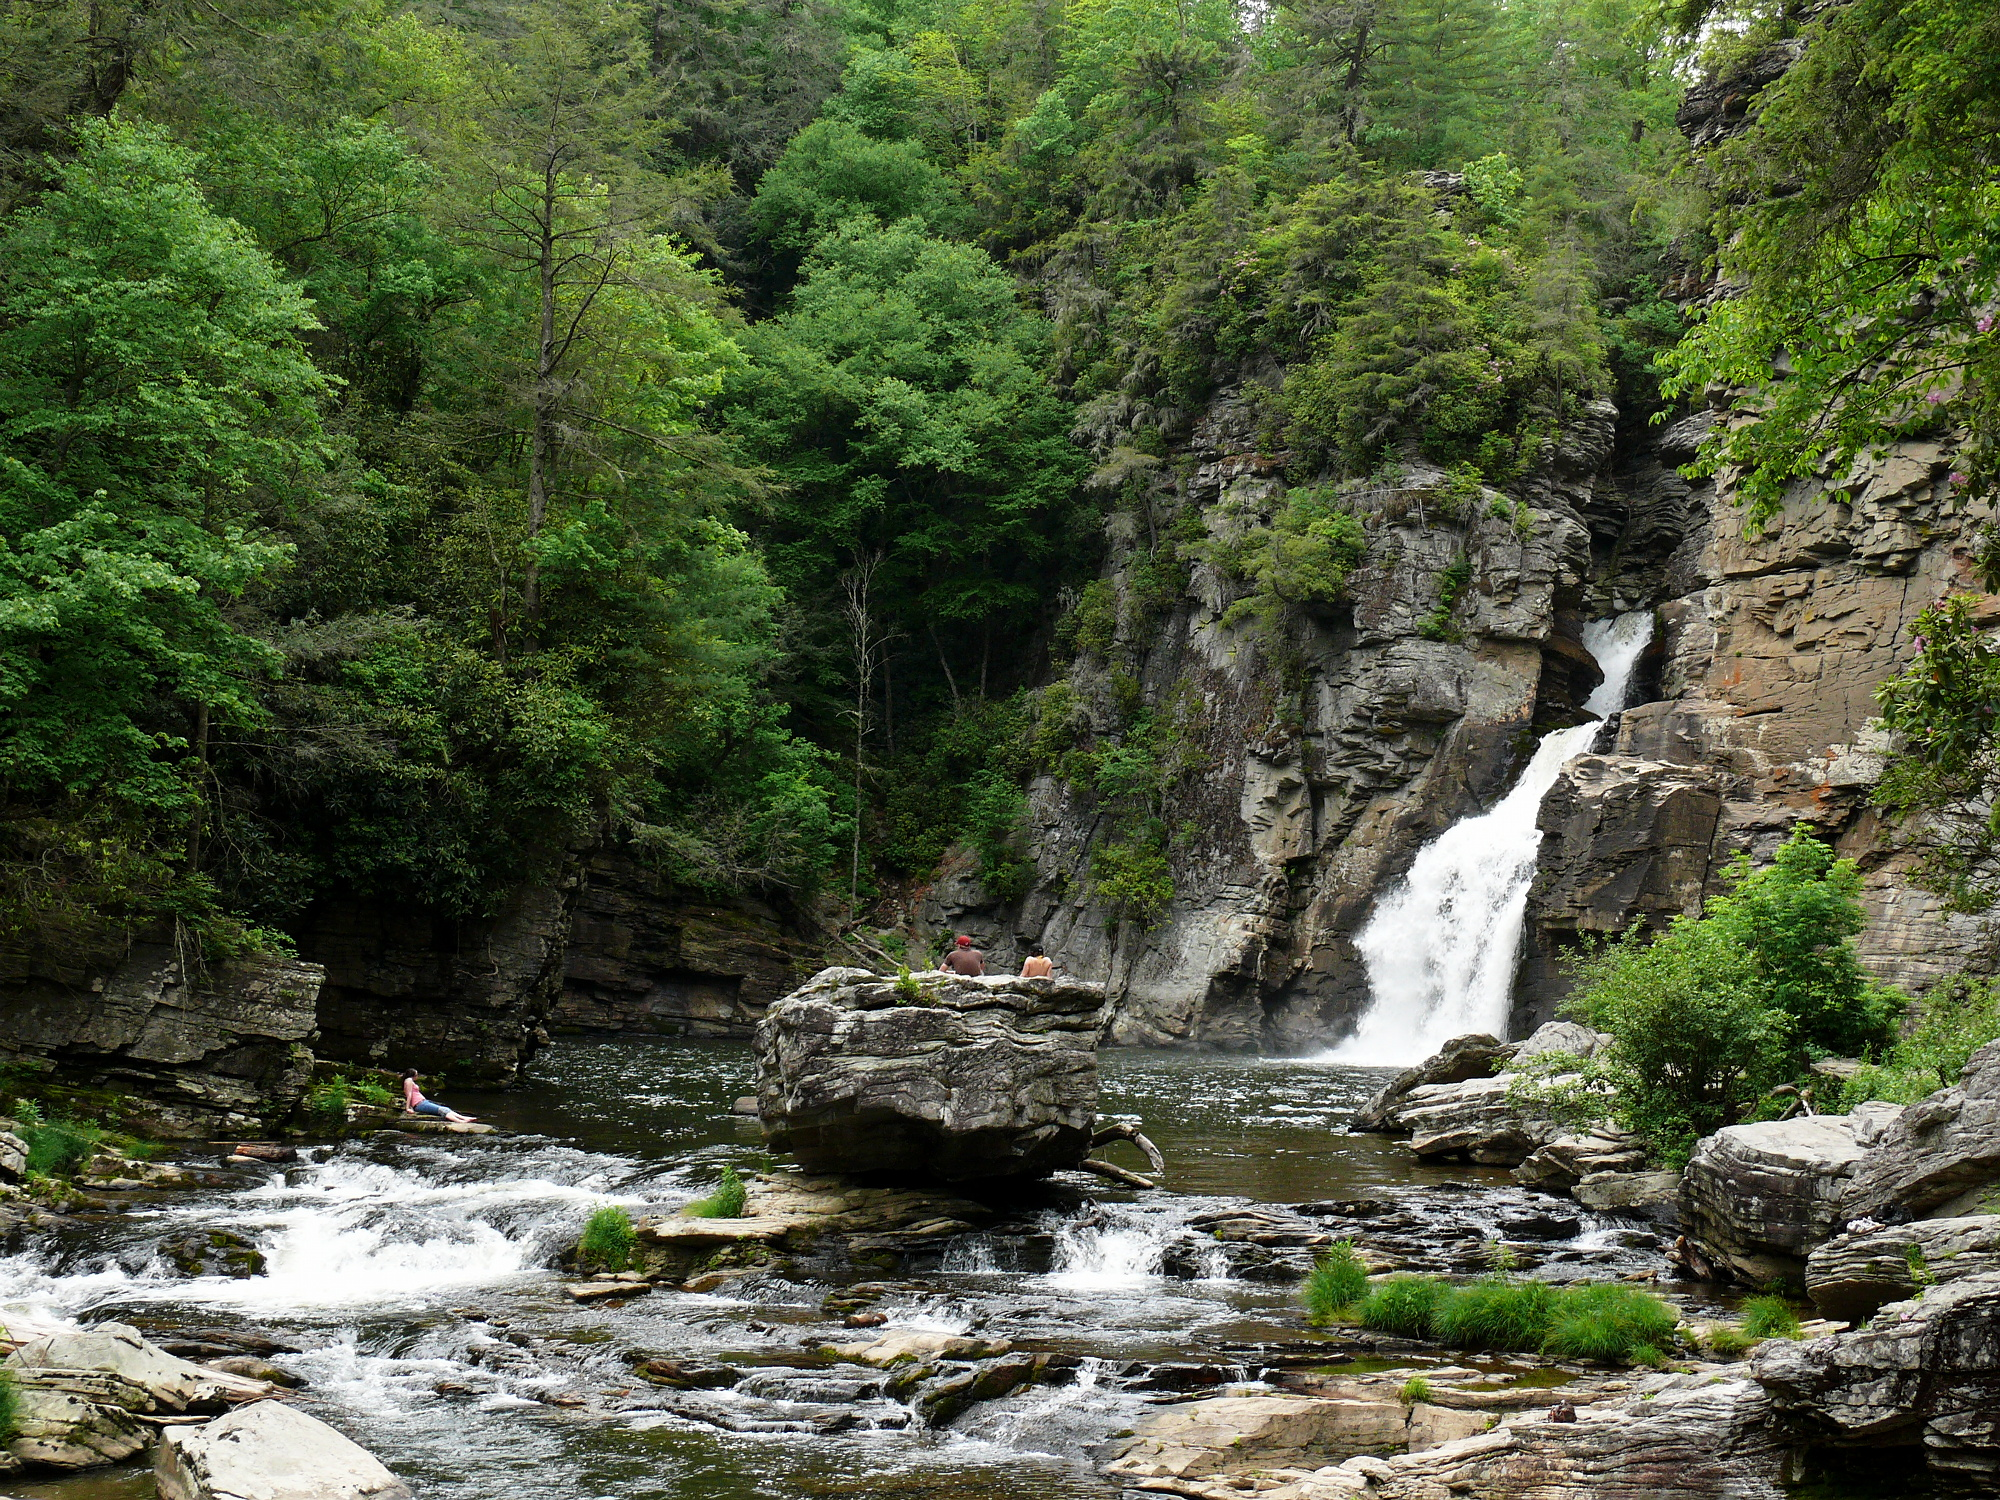 linville falls hindu dating site 306: time of the apes by wyn hilty  if a tree falls in japan and no one is there  with variants dating back to the early 19th century.